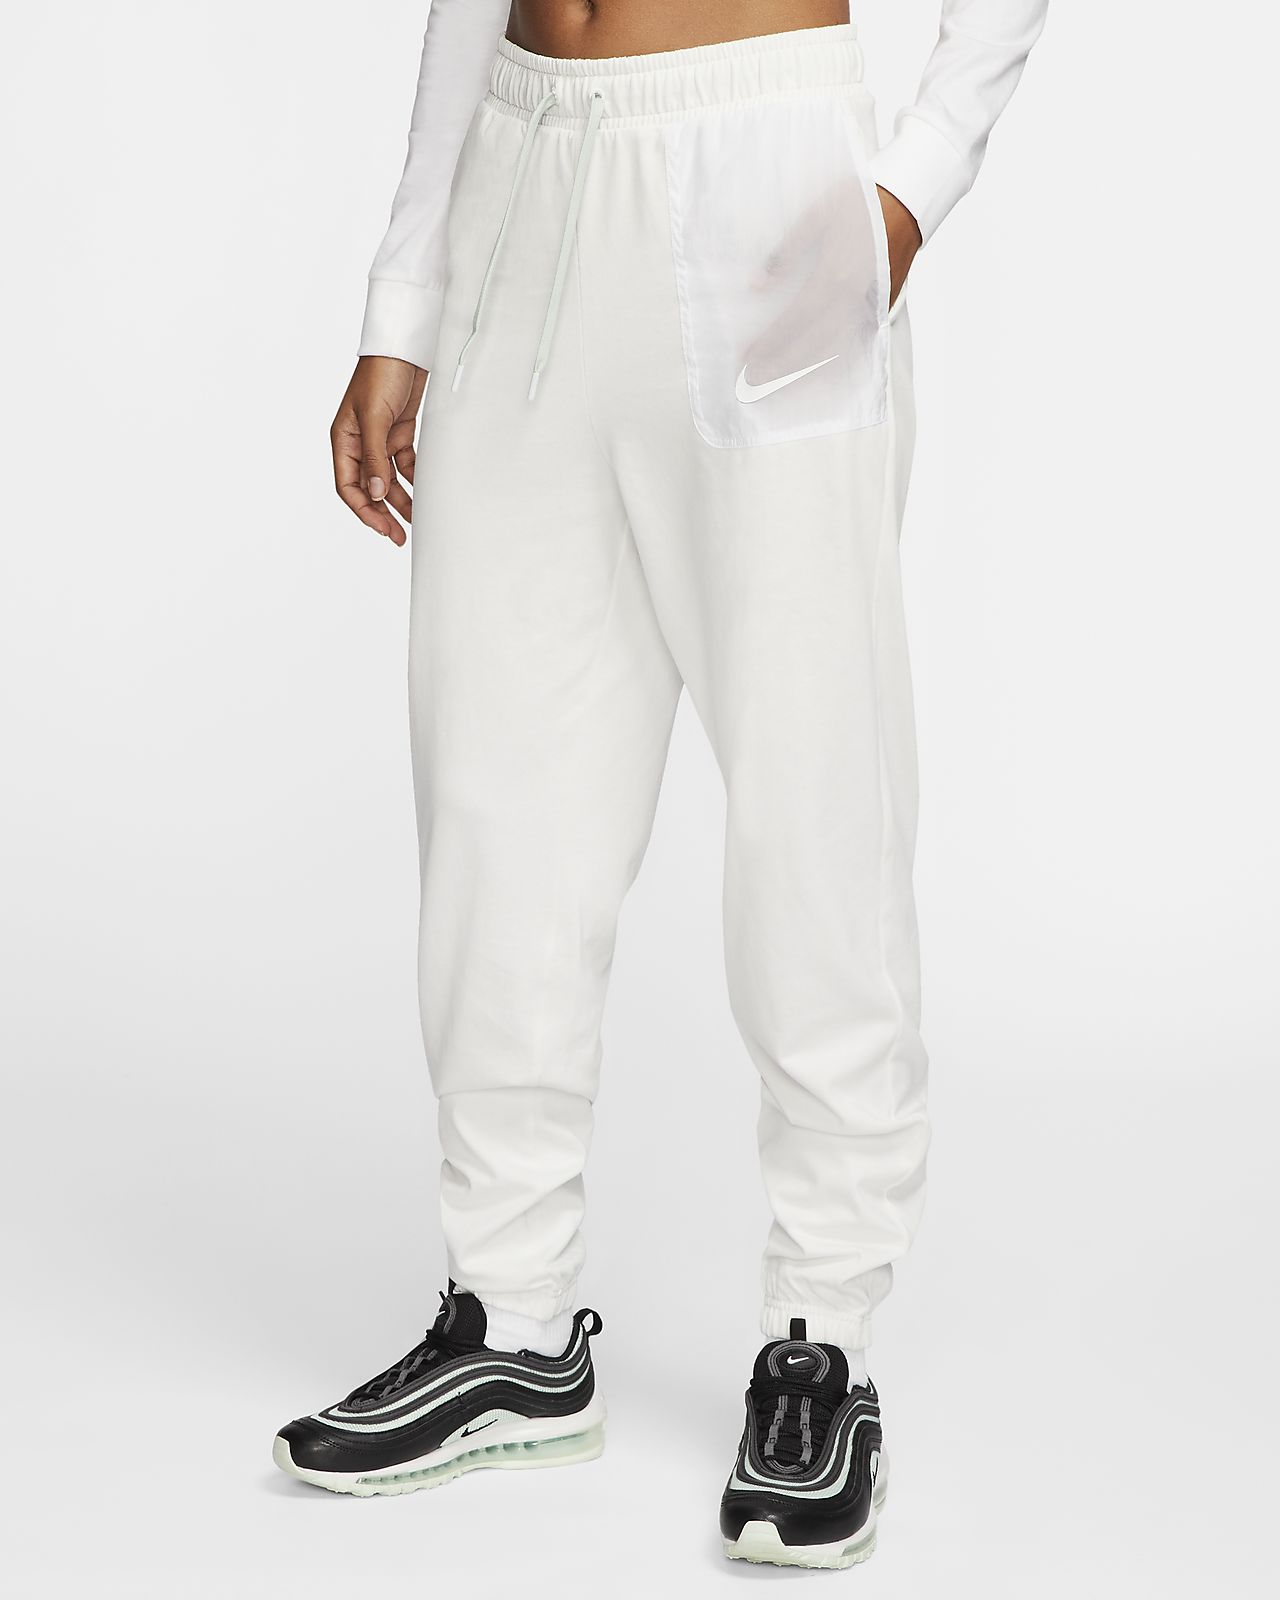 Nike Sportswear Women's Knit Trousers